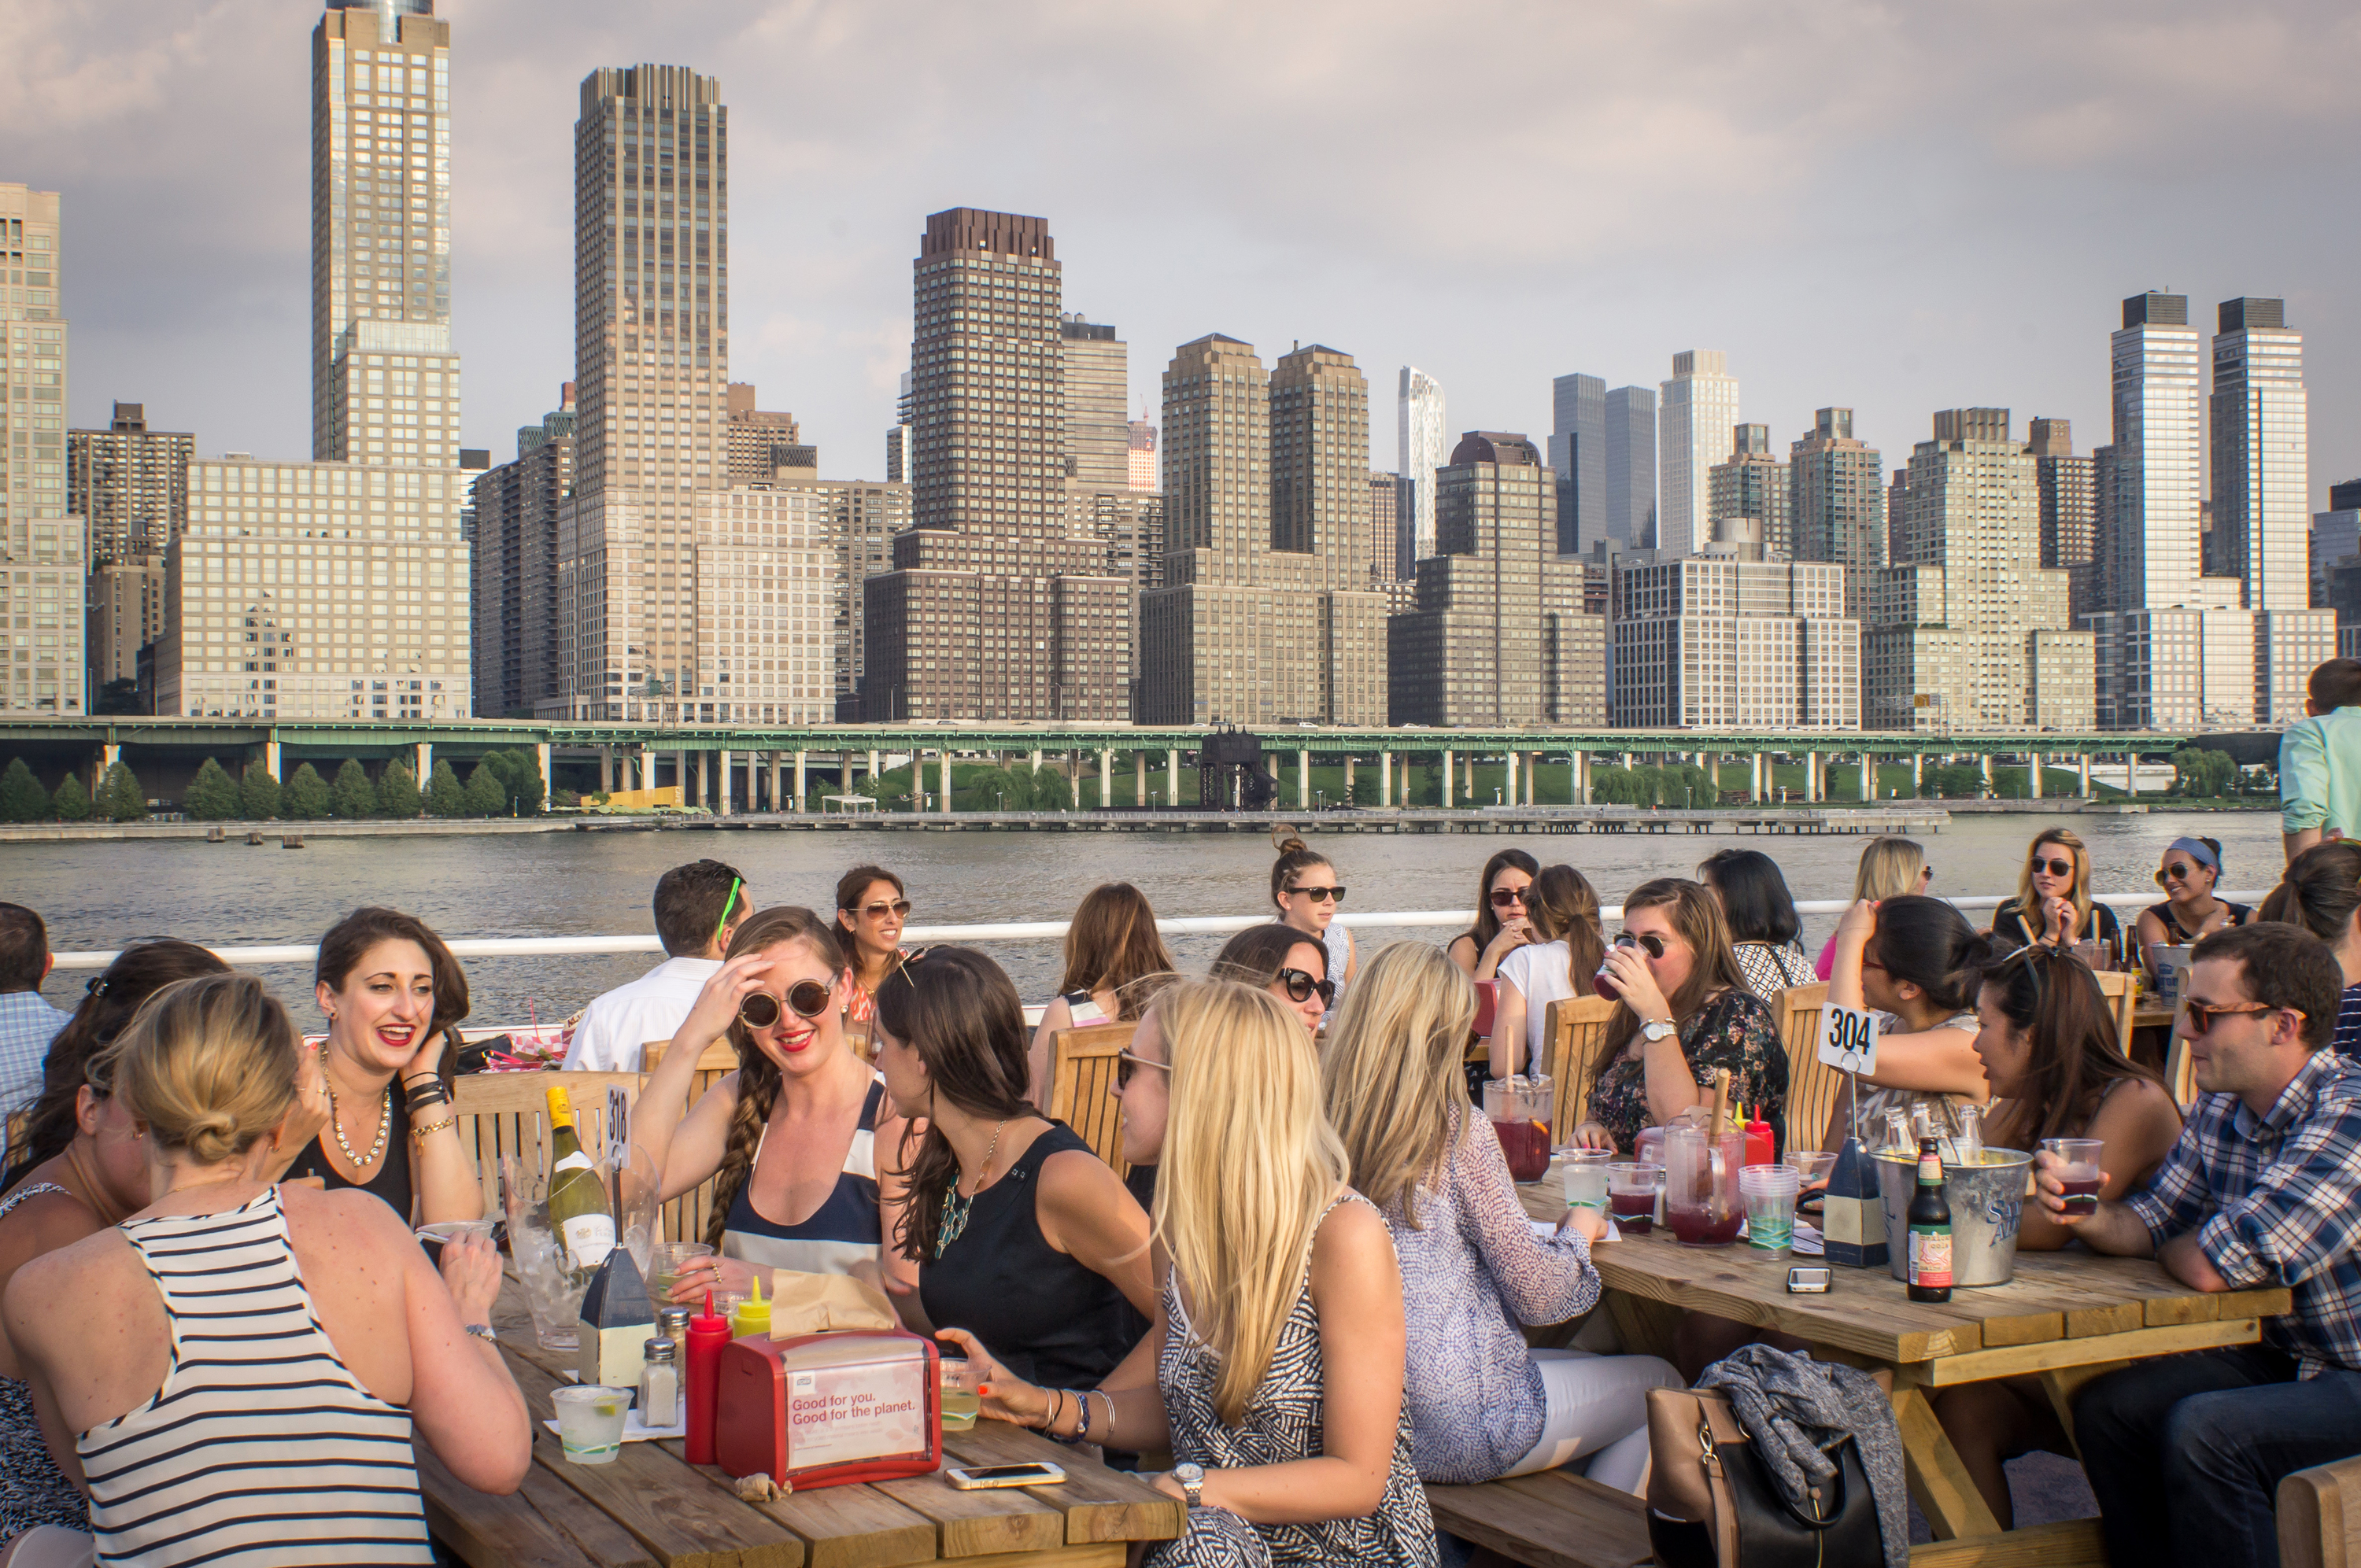 Best Waterfront Restaurants Nyc To Take In Great City Views